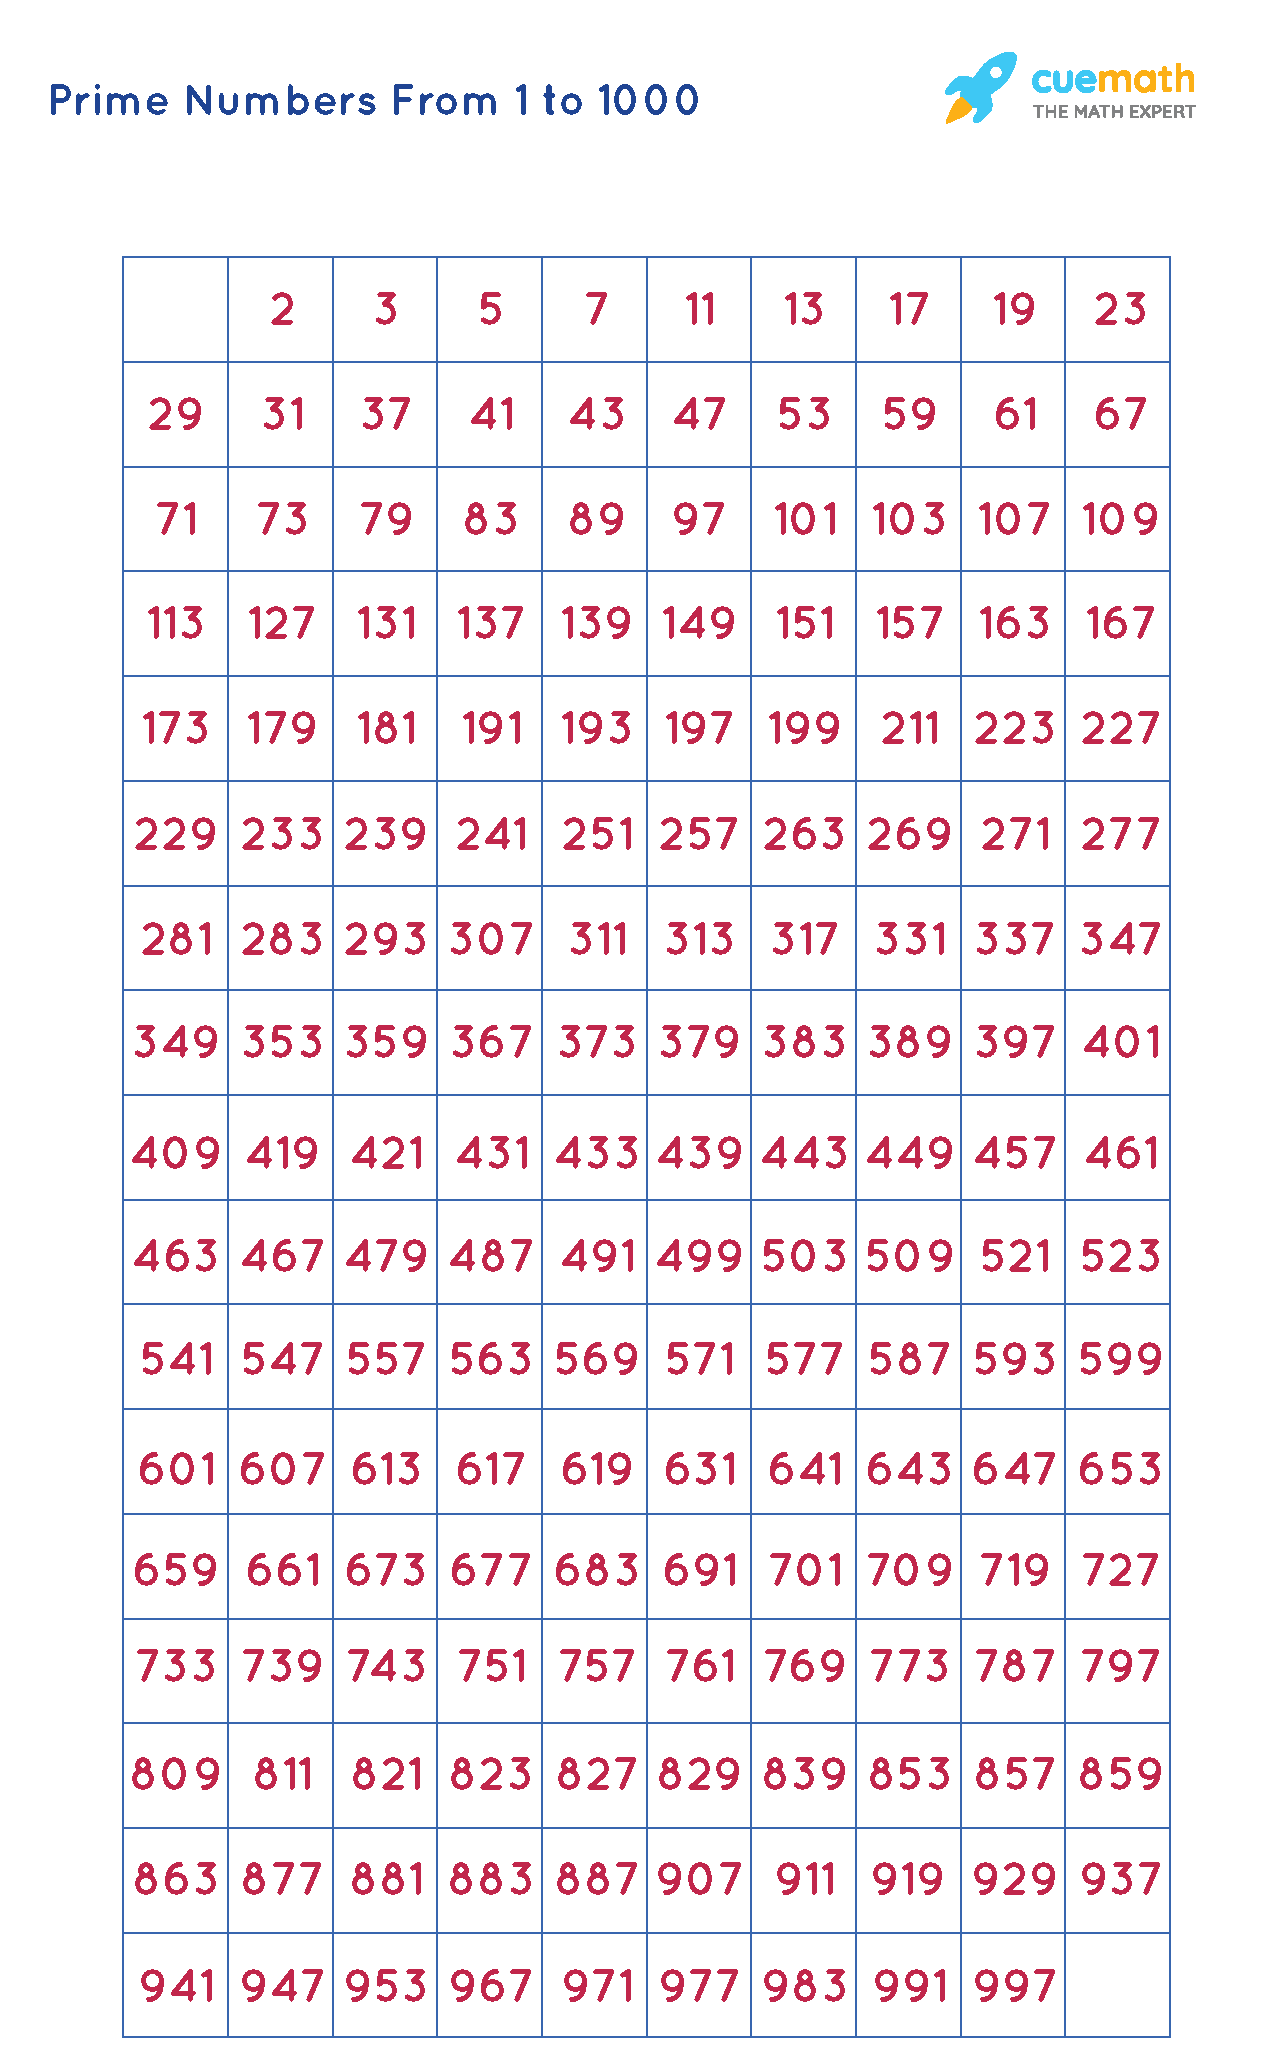 prime numbers from 1 to 1000